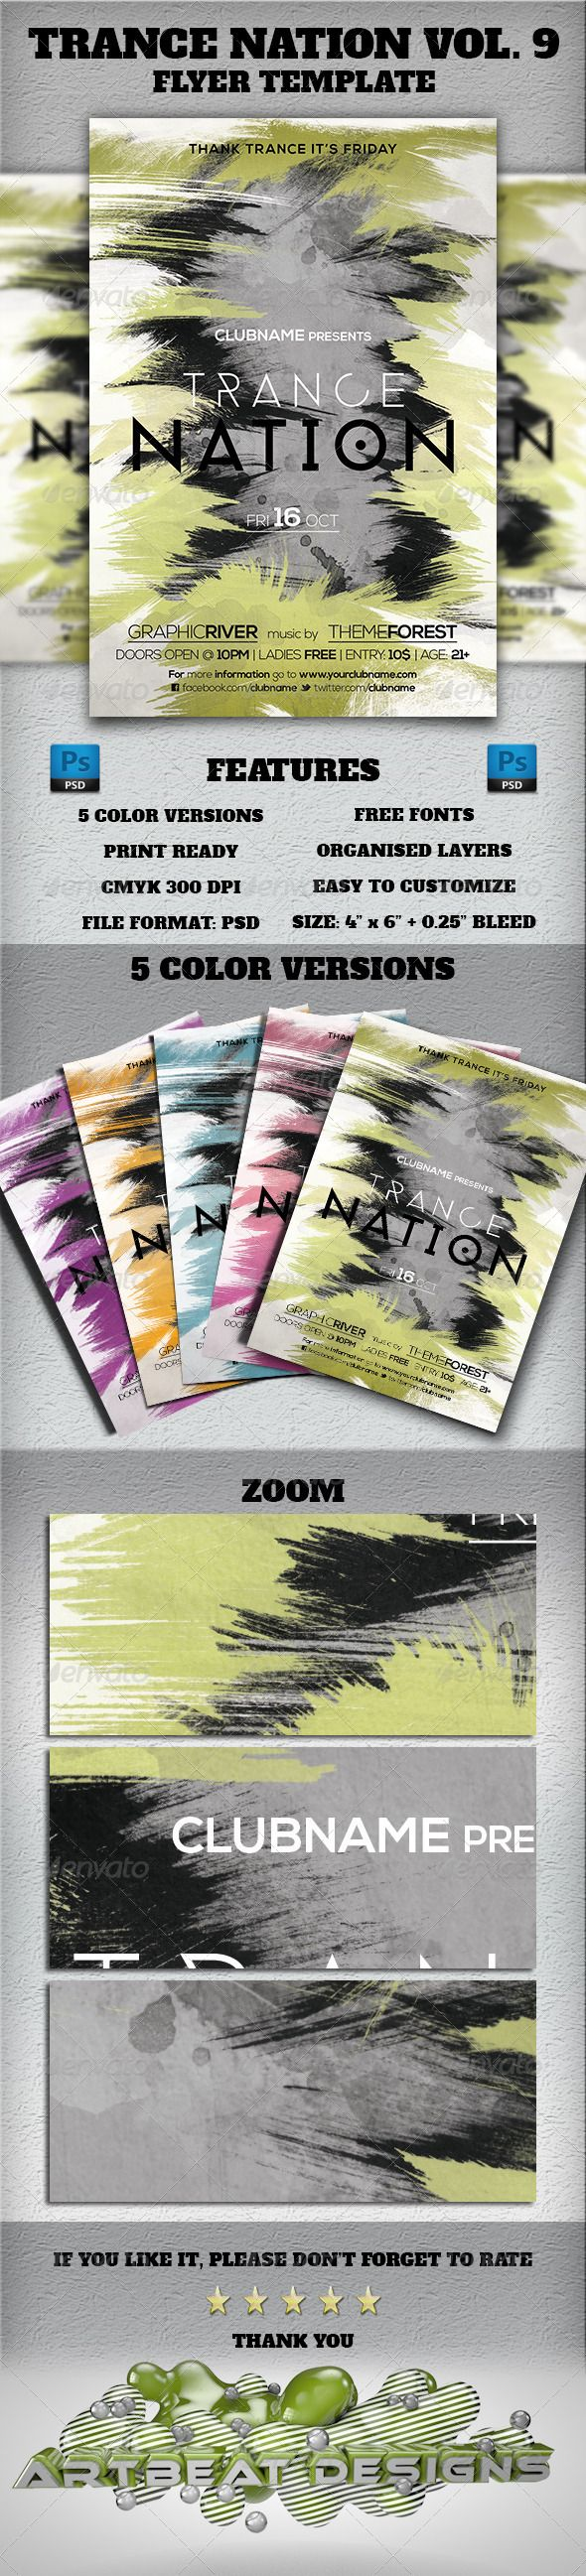 "Trance Nation Vol. 9 Flyer Template  #GraphicRiver        Trance Nation Vol. 9 Flyer Template  	 Everything in the PSD file is well organized and grouped. You can easily change the text and fonts.  Feauters     Color profile: CMYK 300 DPI   Print Ready!  Print dimension 4"" x 6"" with 0.25"" bleed    Color versions: (5 colors)  	 Choose one of the pre-made background colors. Available in: Blue, Green, Purple, Orange and Pink  Fonts:    Phantom: Download Nexa Light & Nexa Bold: Download  Social…"